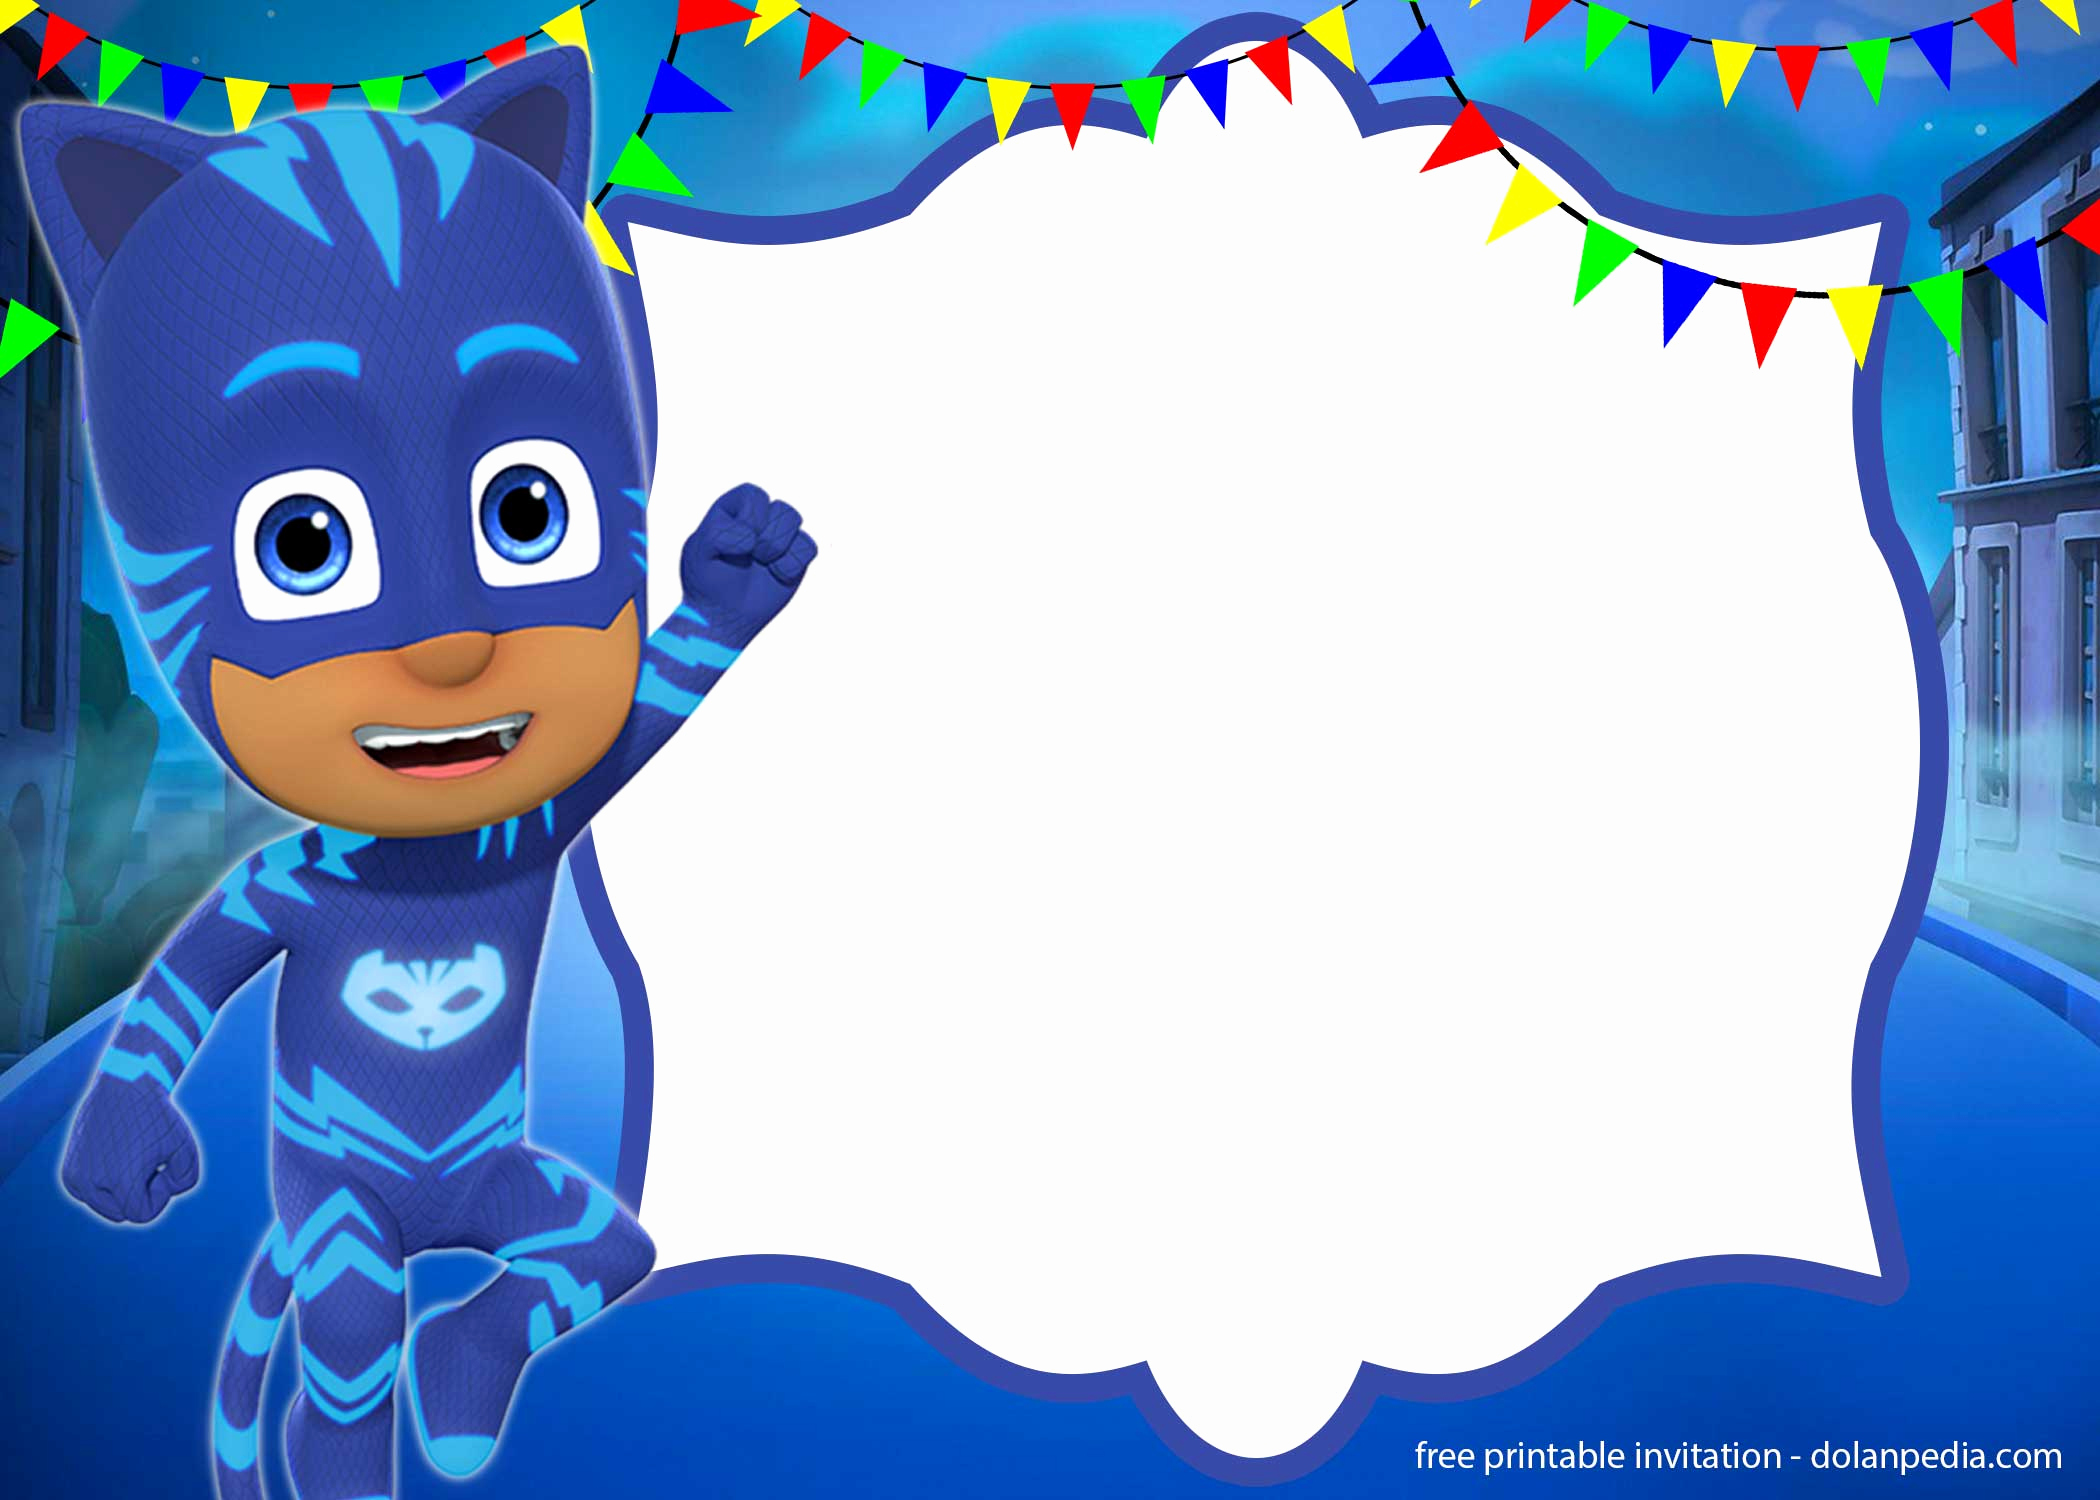 Pj Mask Invitation Free Fresh 9 Free Pj Masks Birthday Invitation Templates – Updated